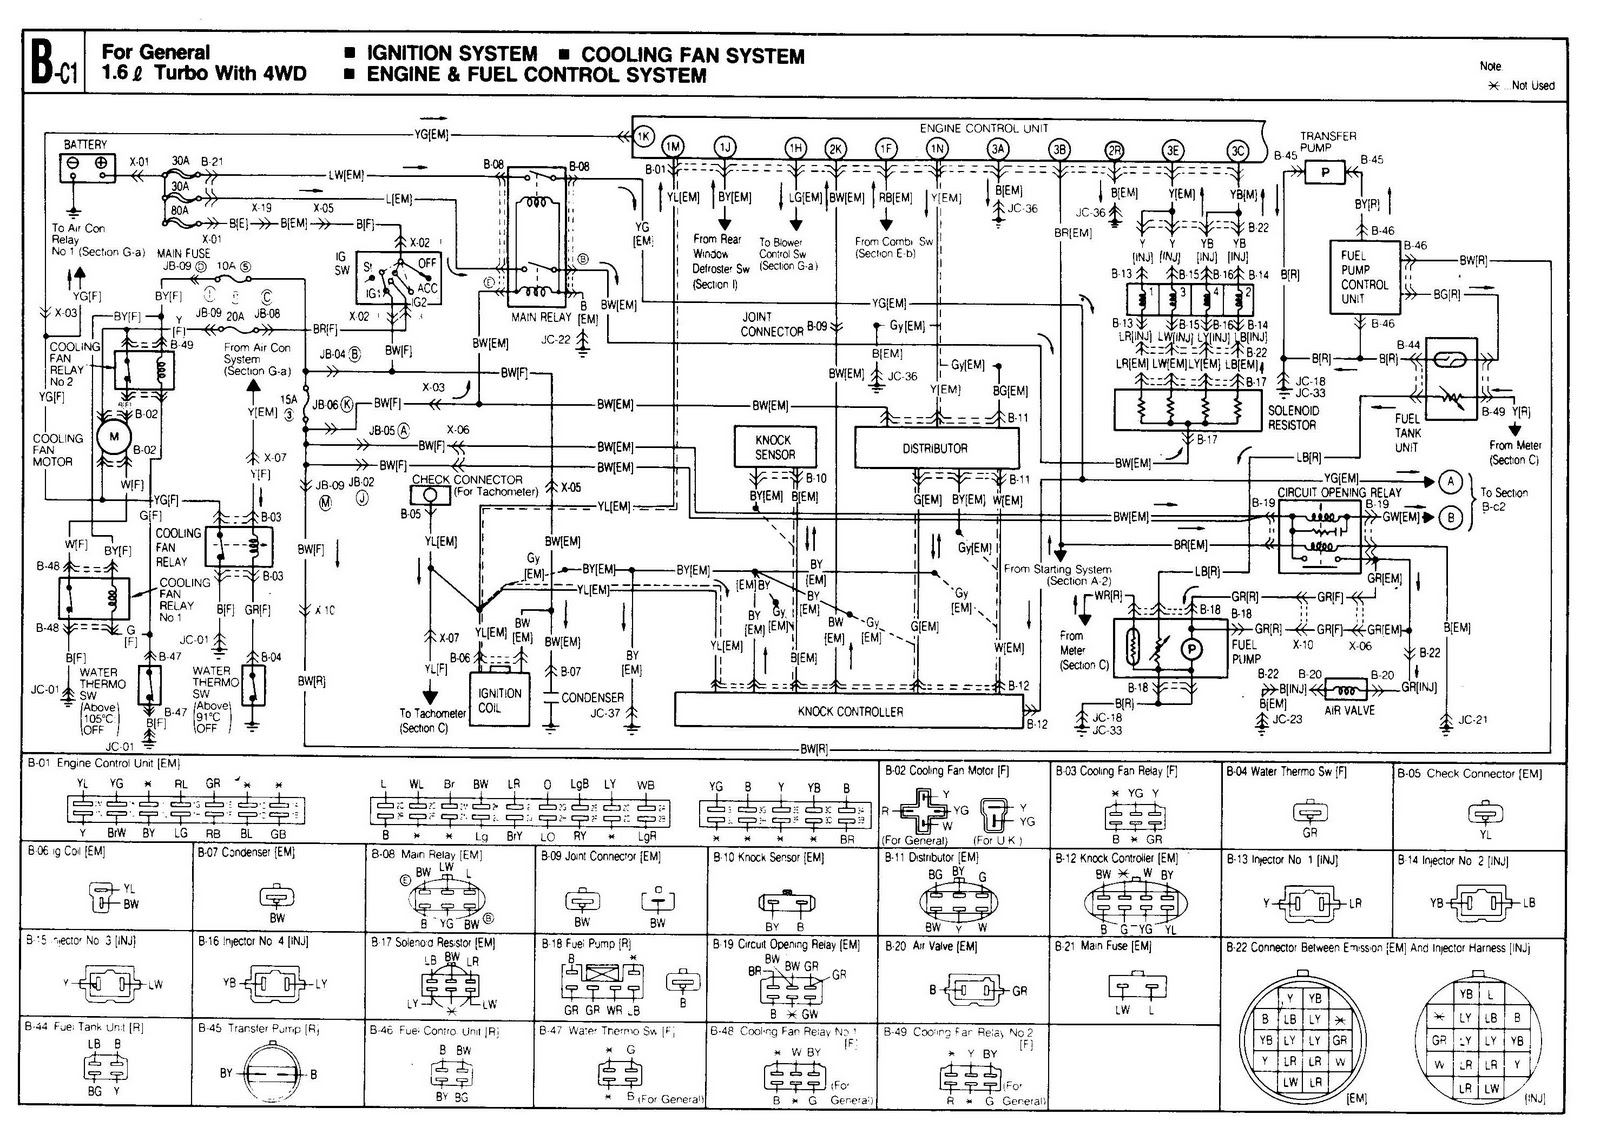 Mazda Rx8 Wiring Diagram Data Electric Heat Fuse Box Auto Electrical Nissan 240sx 2004 Starter